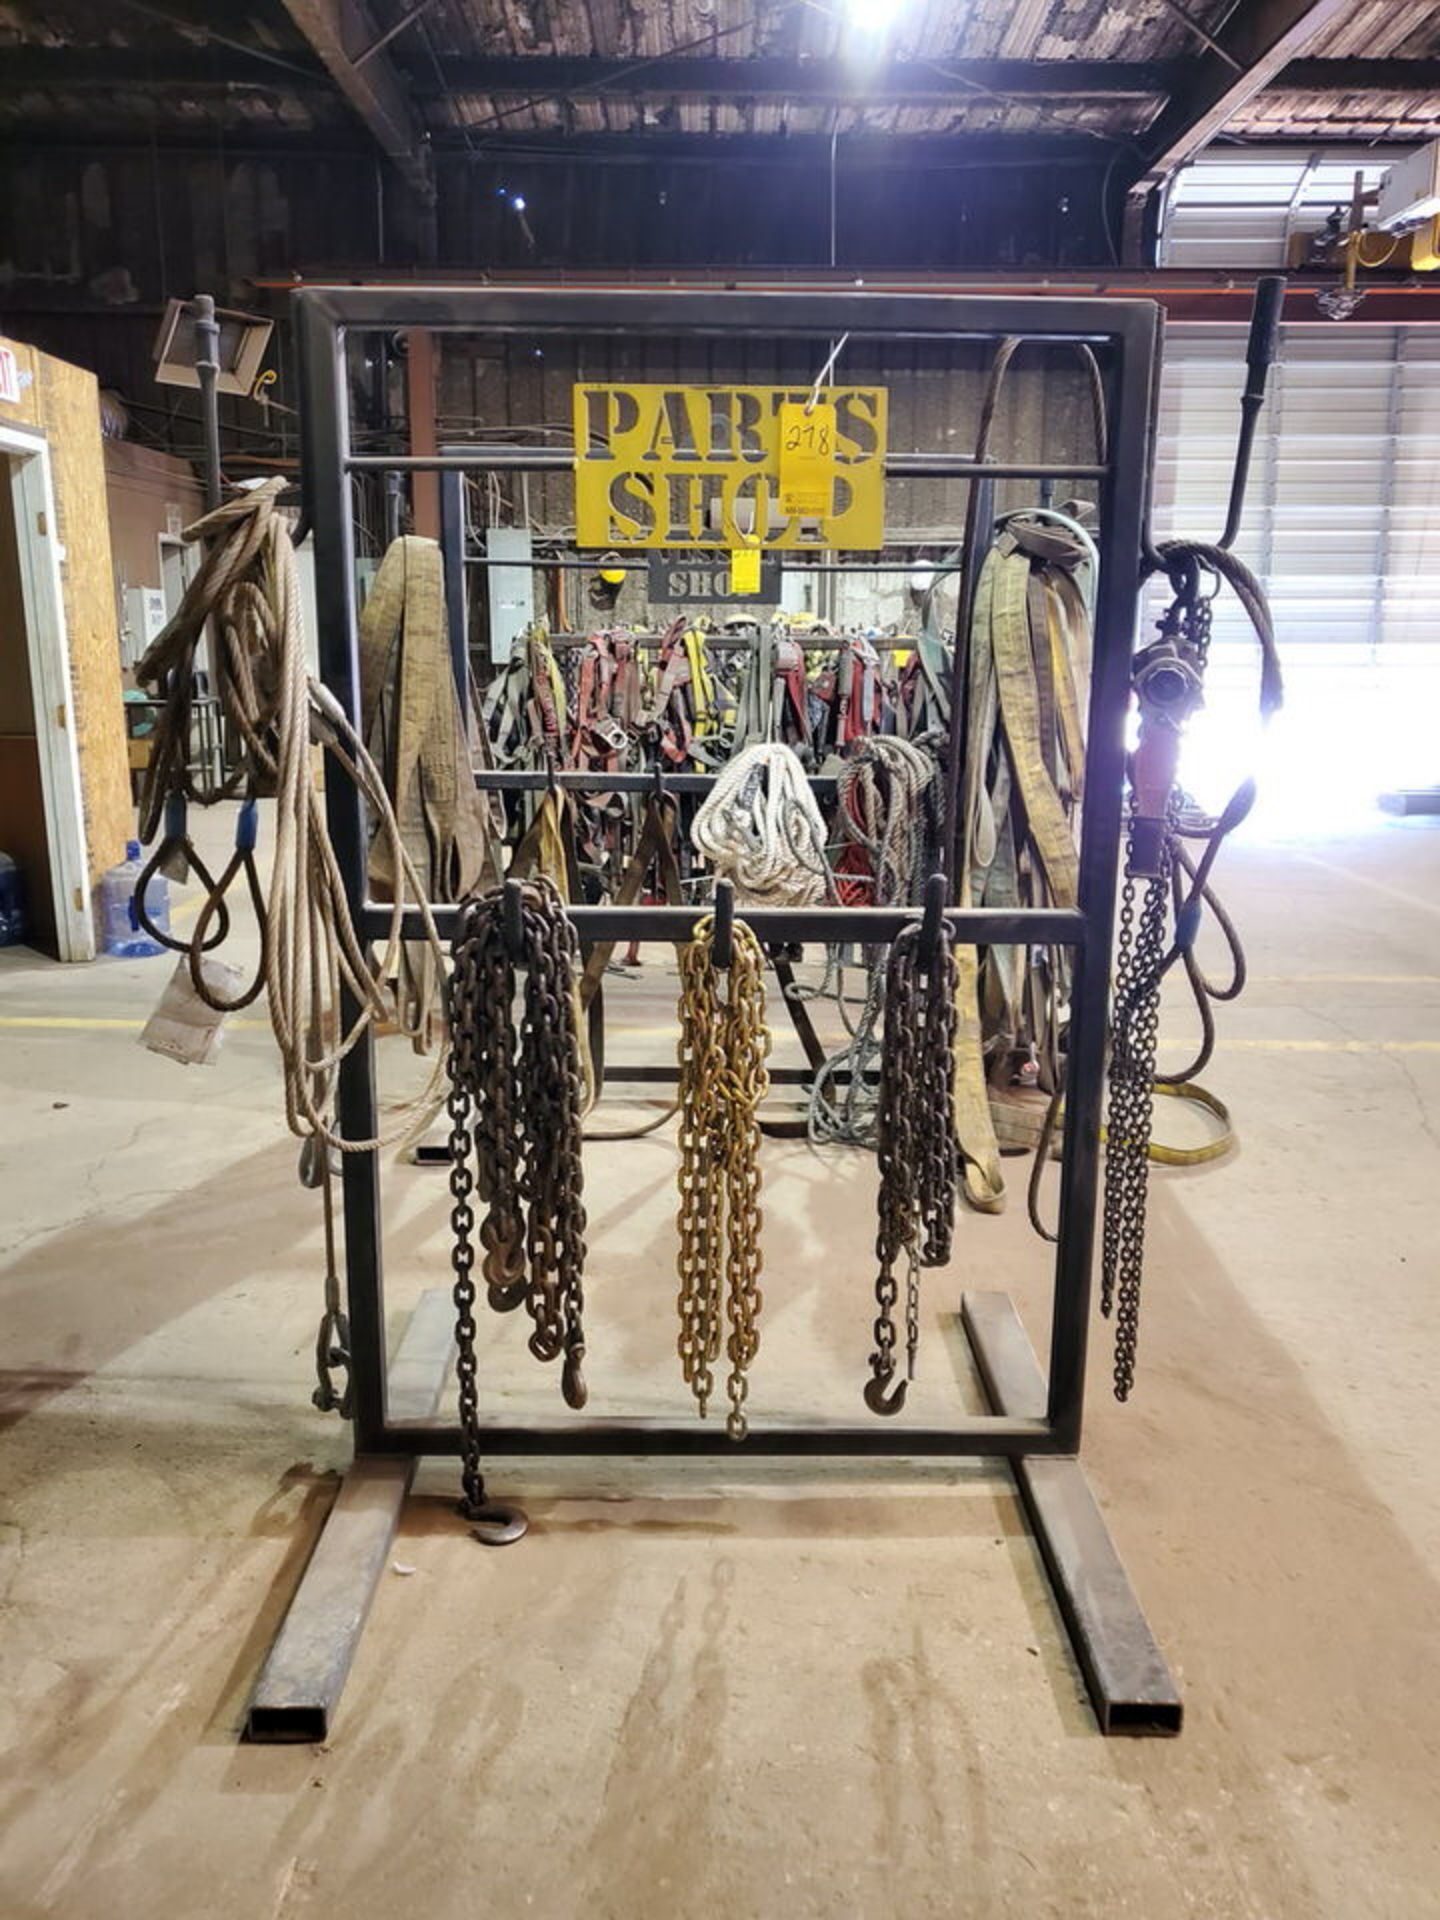 Assorted Lifting Stl Slings & Chains W/ Rack - Image 2 of 7